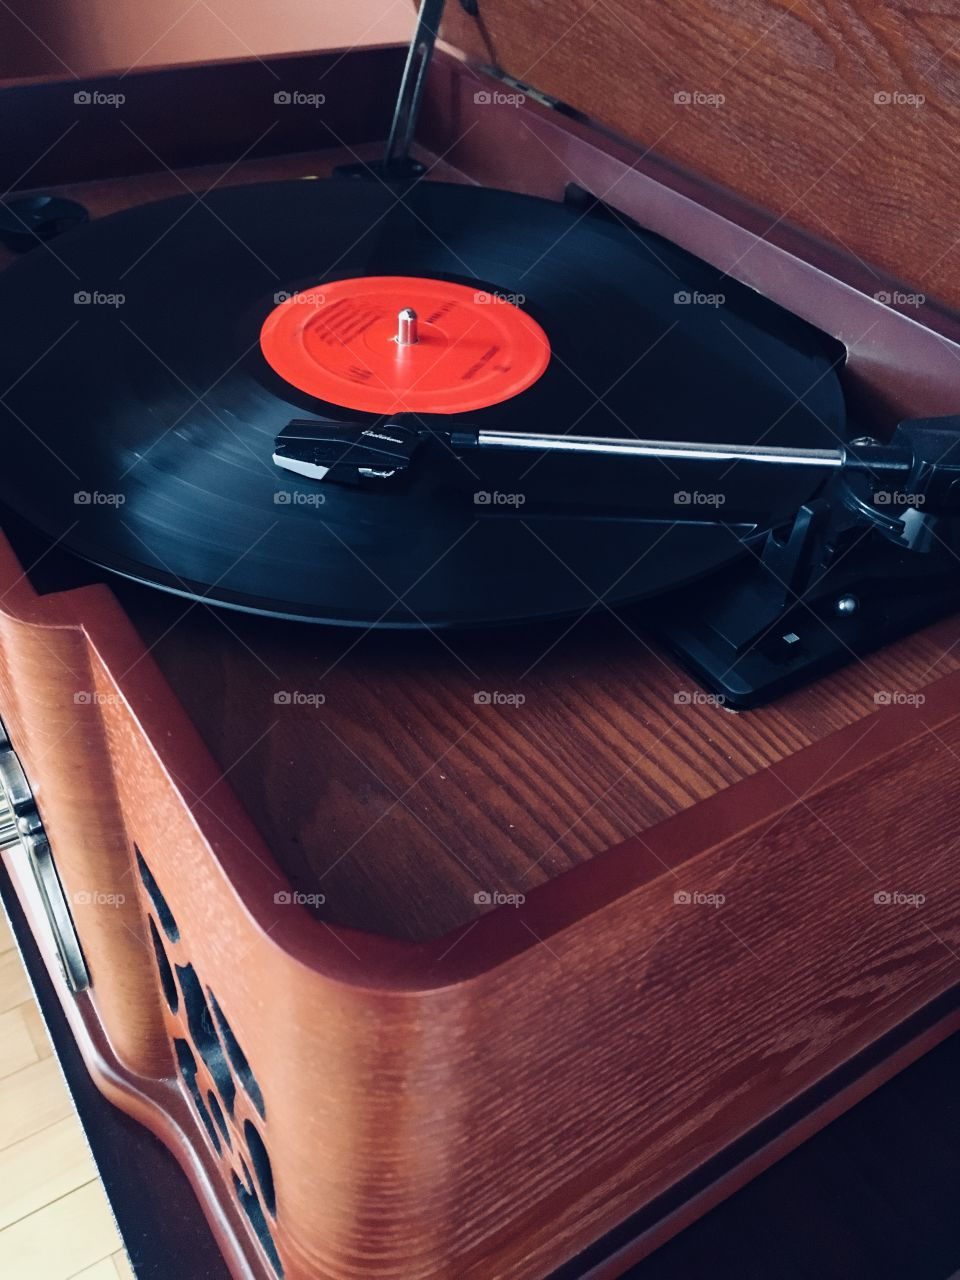 Vinyl record playing music on a vintage antique style wooden record player.